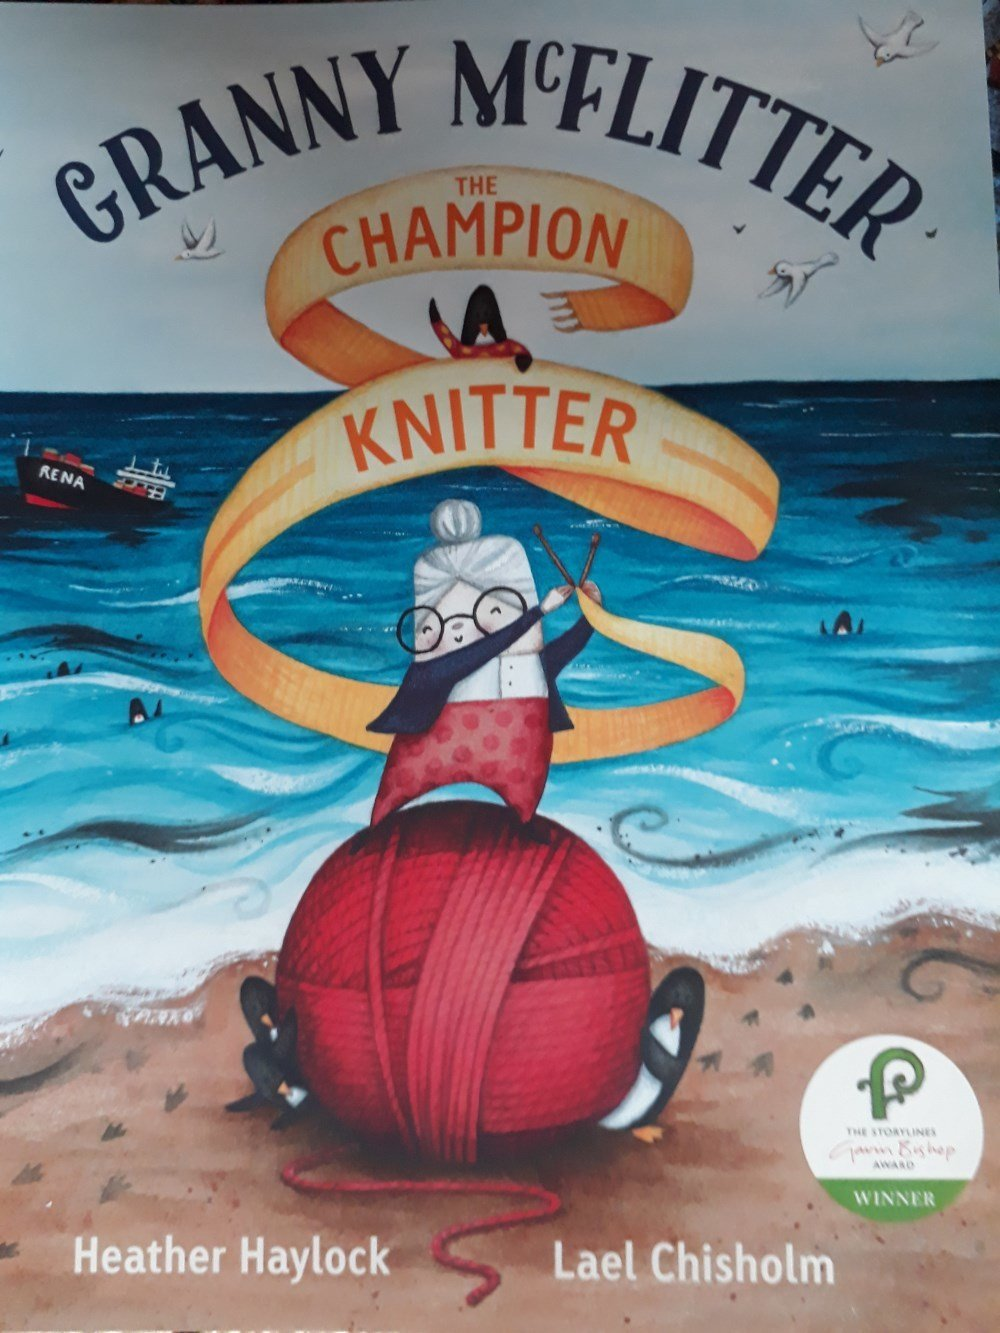 granny-mcflitter-the-champion-knitter.jpg